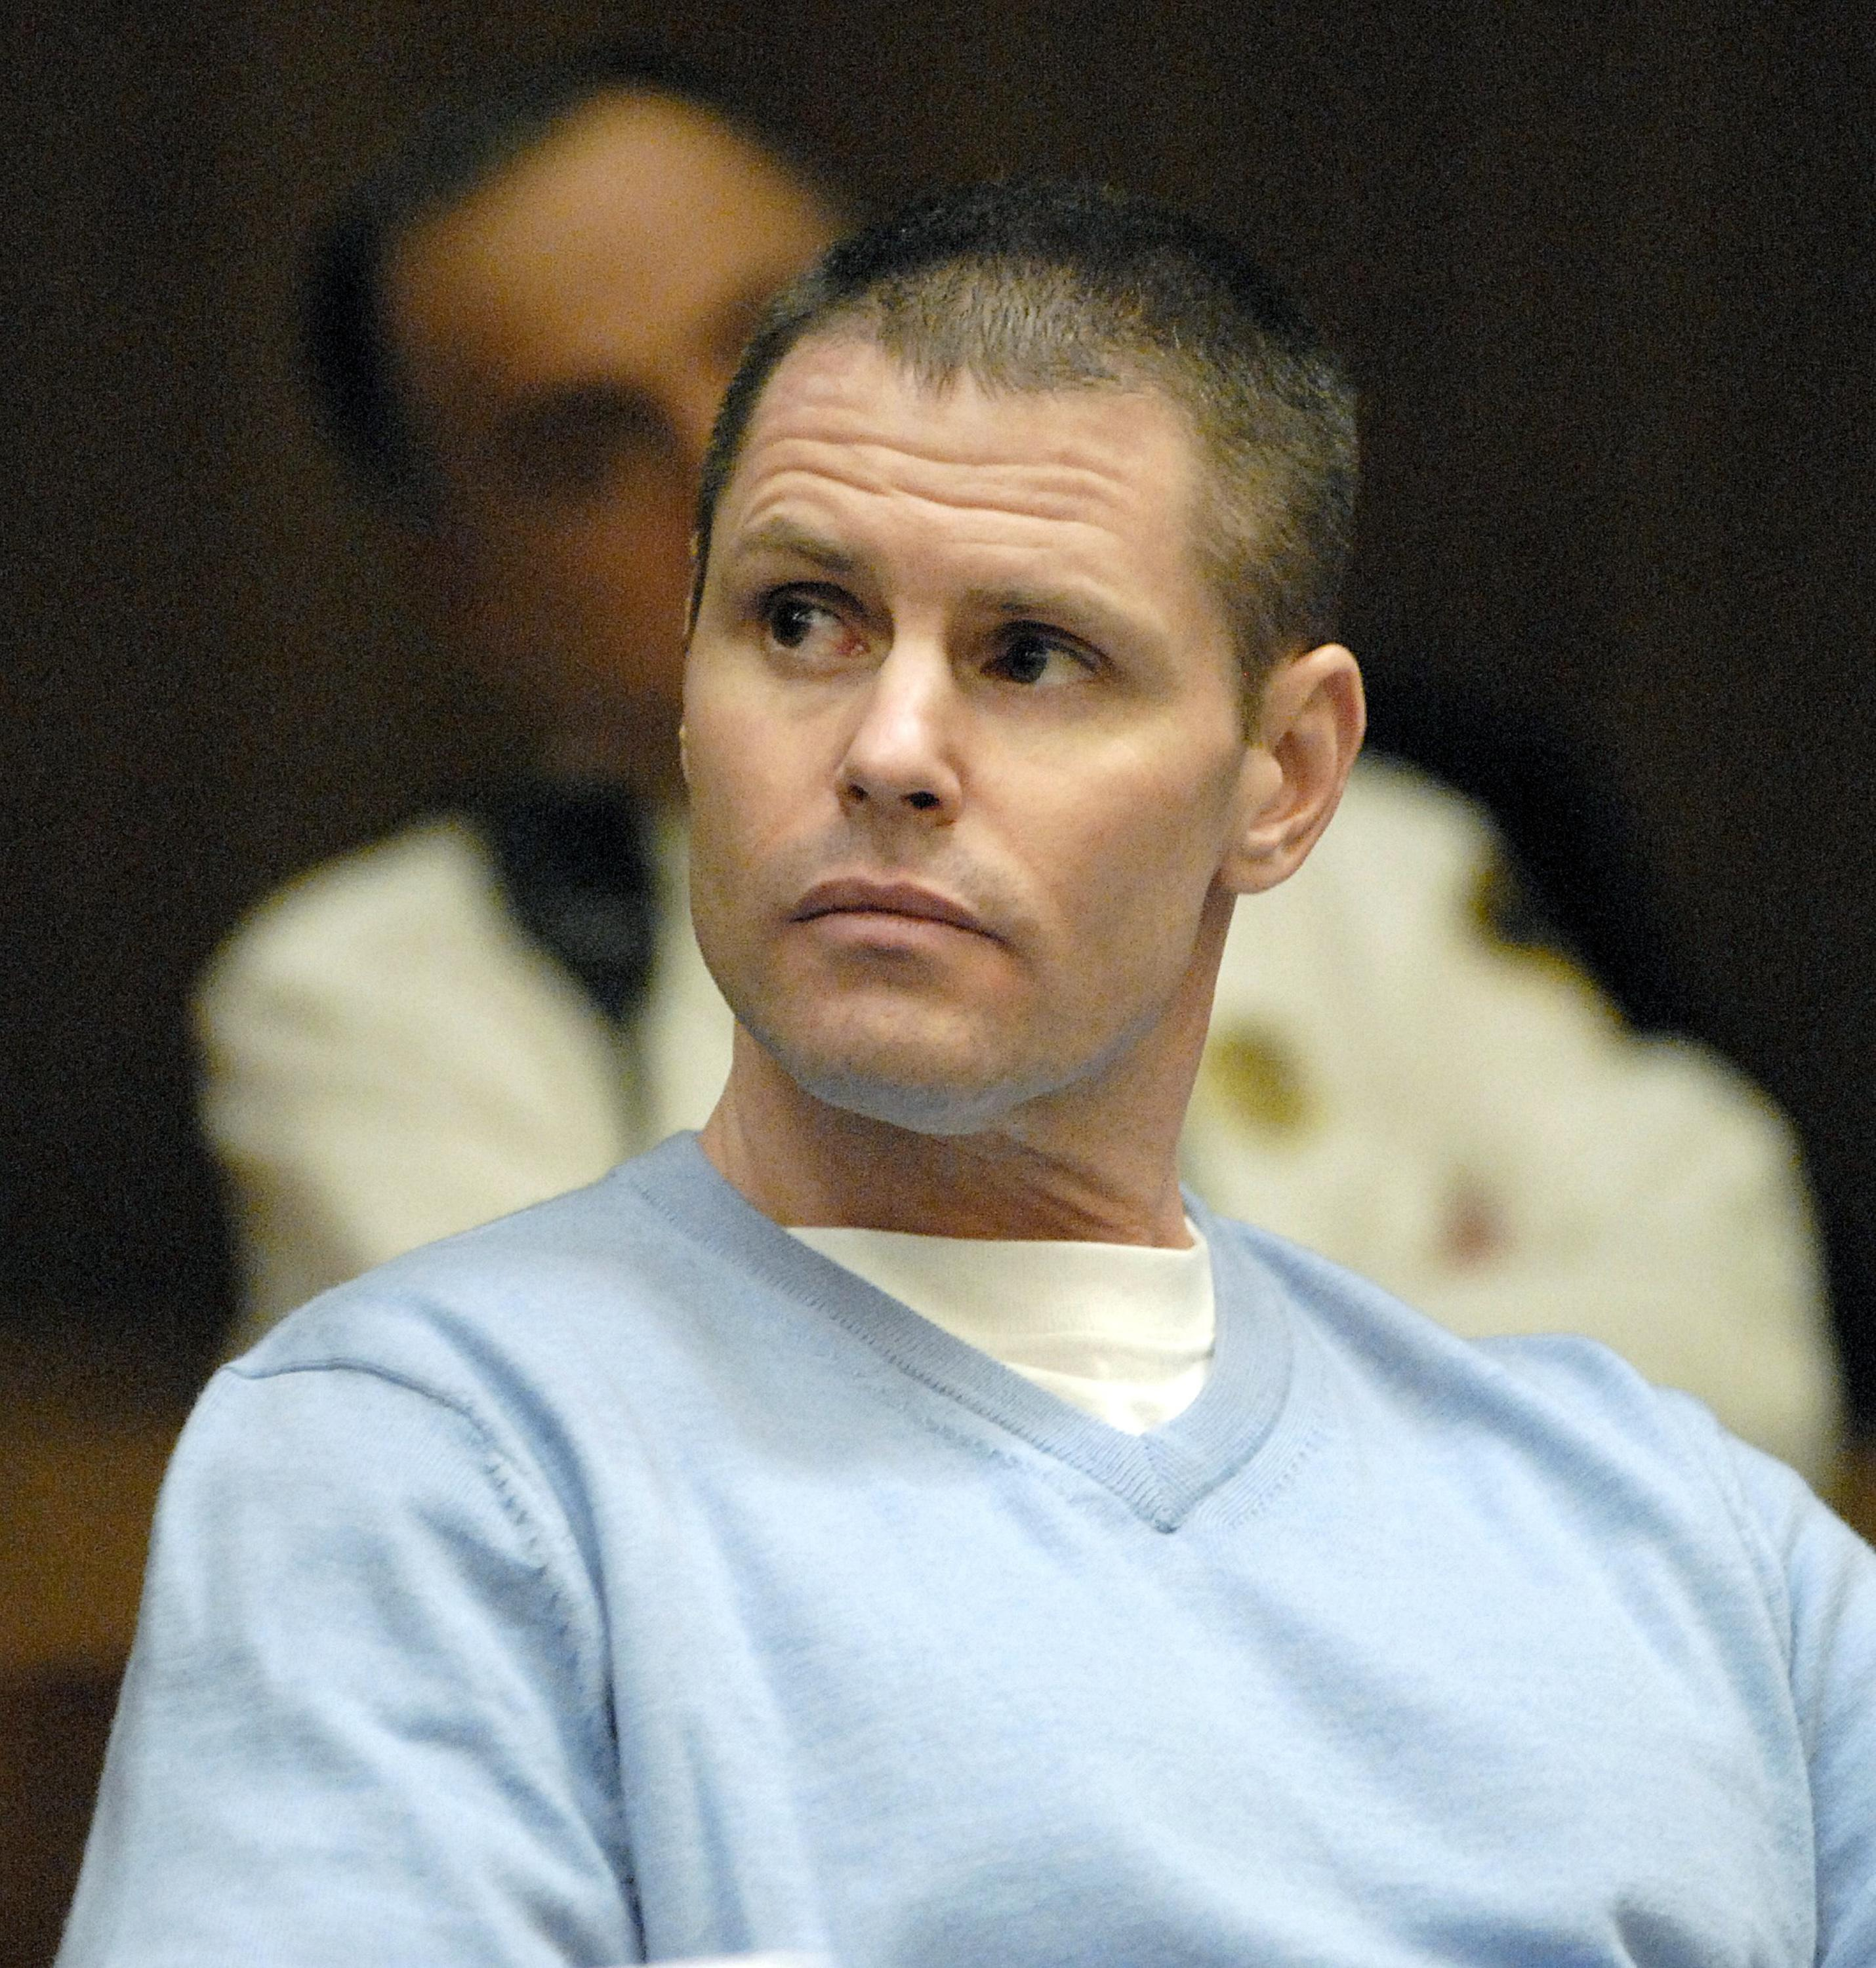 Official: Mafia hit man suspected in Whitey Bulger's slaying | The